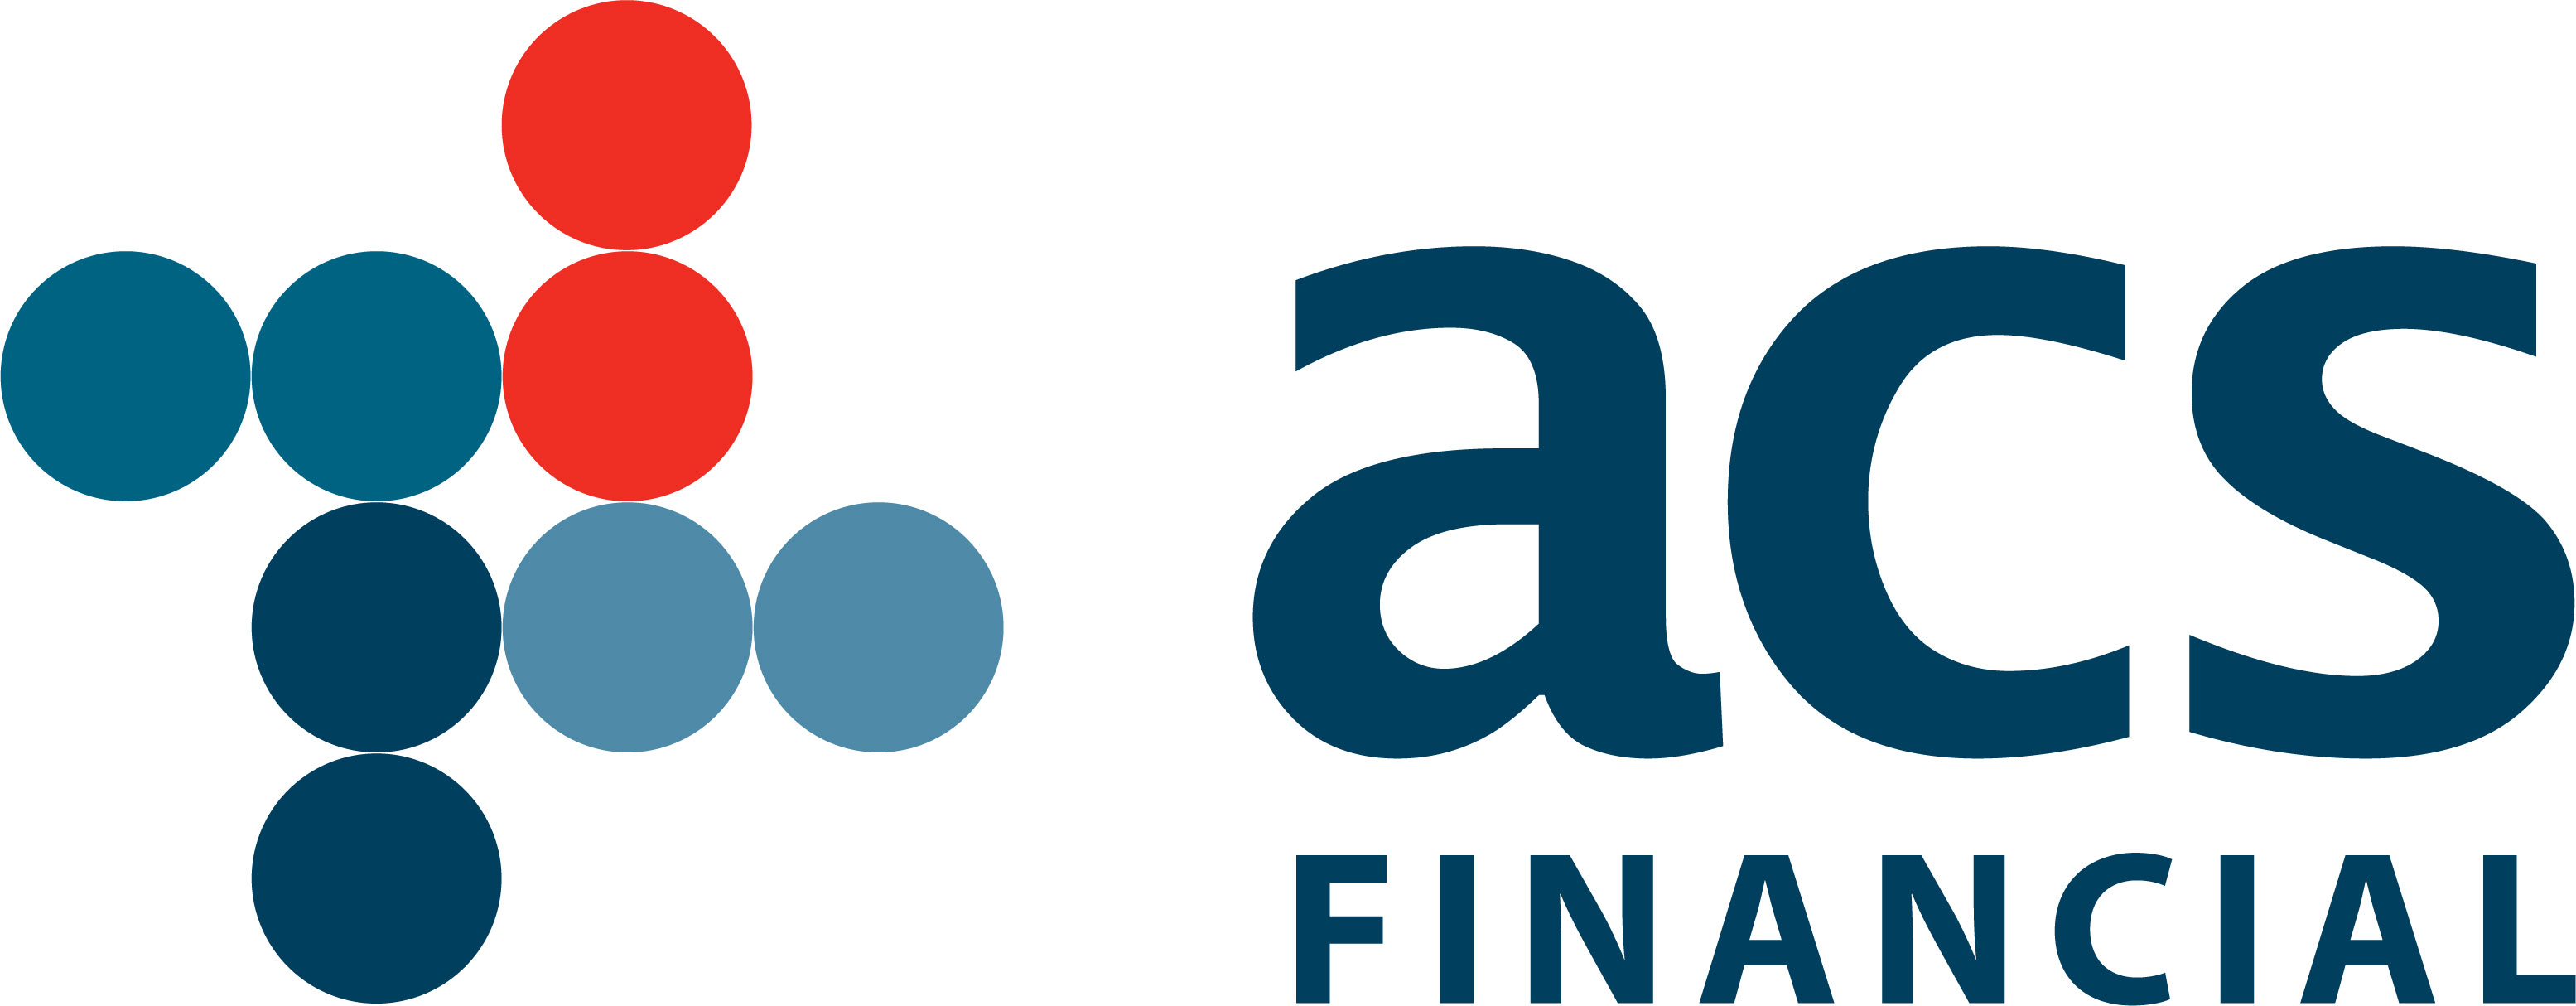 ACS Financial logo_large_RGB